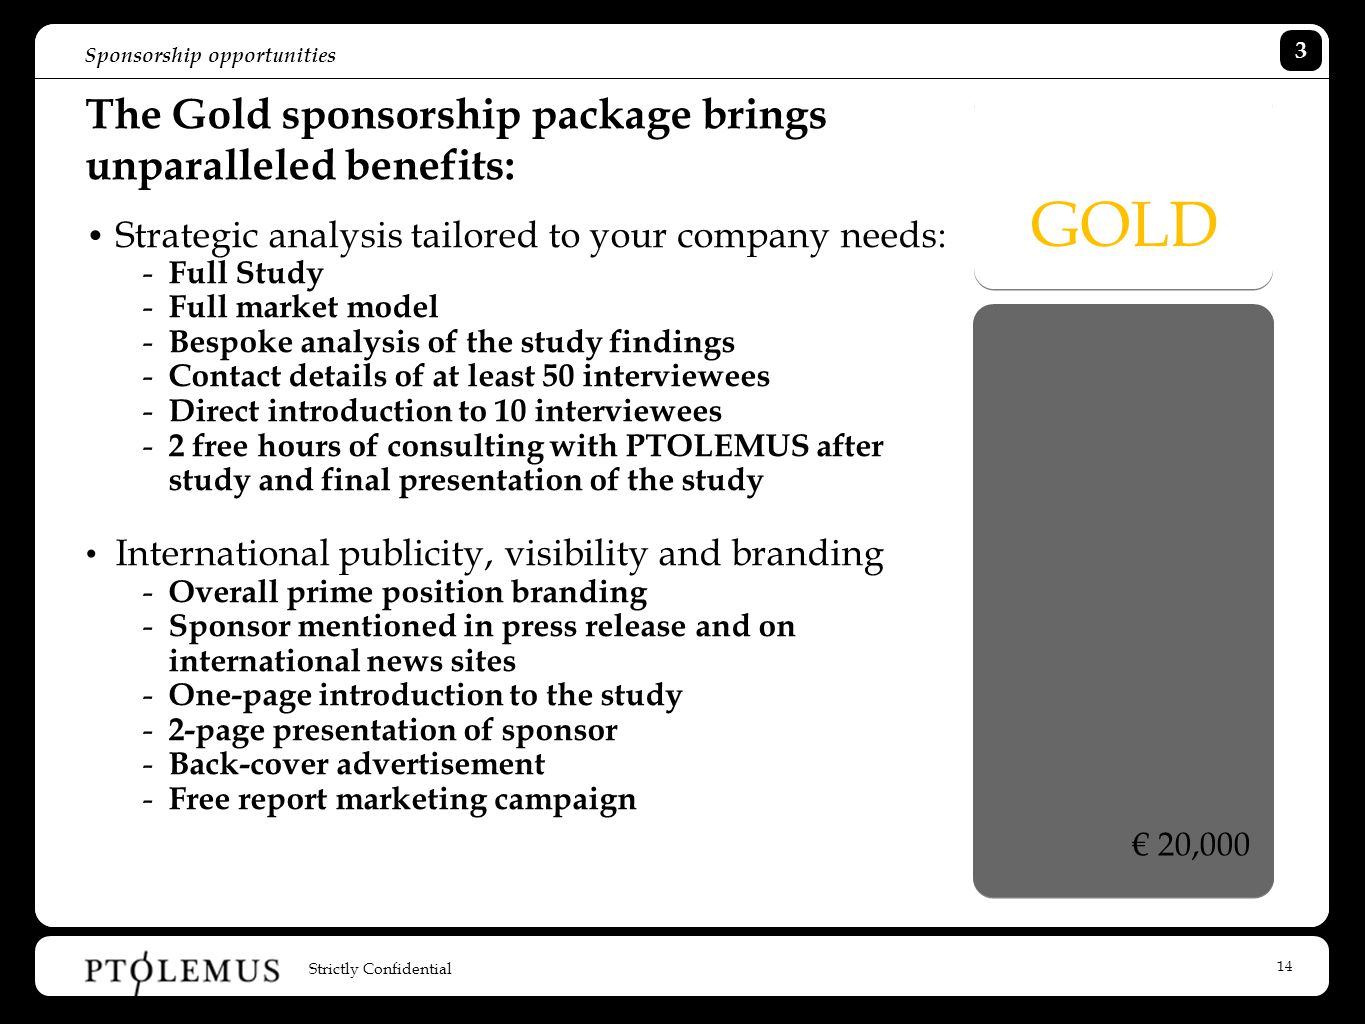 14 Sponsorship opportunities The Gold sponsorship package brings unparalleled benefits: Strategic analysis tailored to your company needs: - Full Study - Full market model - Bespoke analysis of the study findings - Contact details of at least 50 interviewees - Direct introduction to 10 interviewees - 2 free hours of consulting with PTOLEMUS after study and final presentation of the study International publicity, visibility and branding - Overall prime position branding - Sponsor mentioned in press release and on international news sites - One-page introduction to the study - 2-page presentation of sponsor - Back-cover advertisement - Free report marketing campaign GOLD € 20,000 Strictly Confidential 3